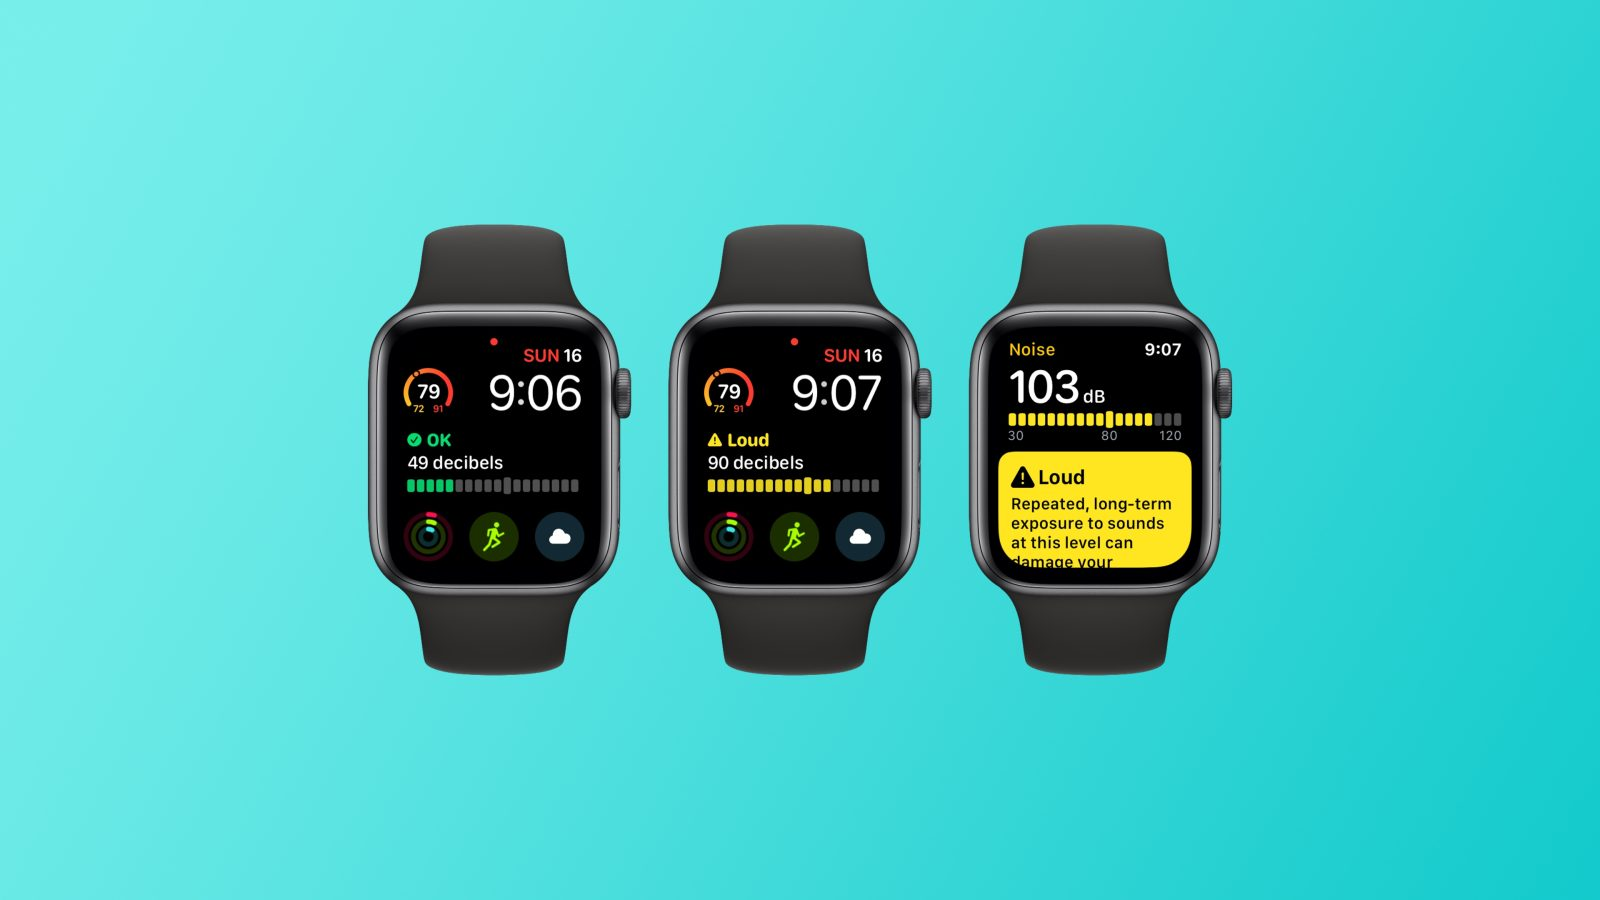 Hands-on: How the Noise app in watchOS 6 helps protect your hearing